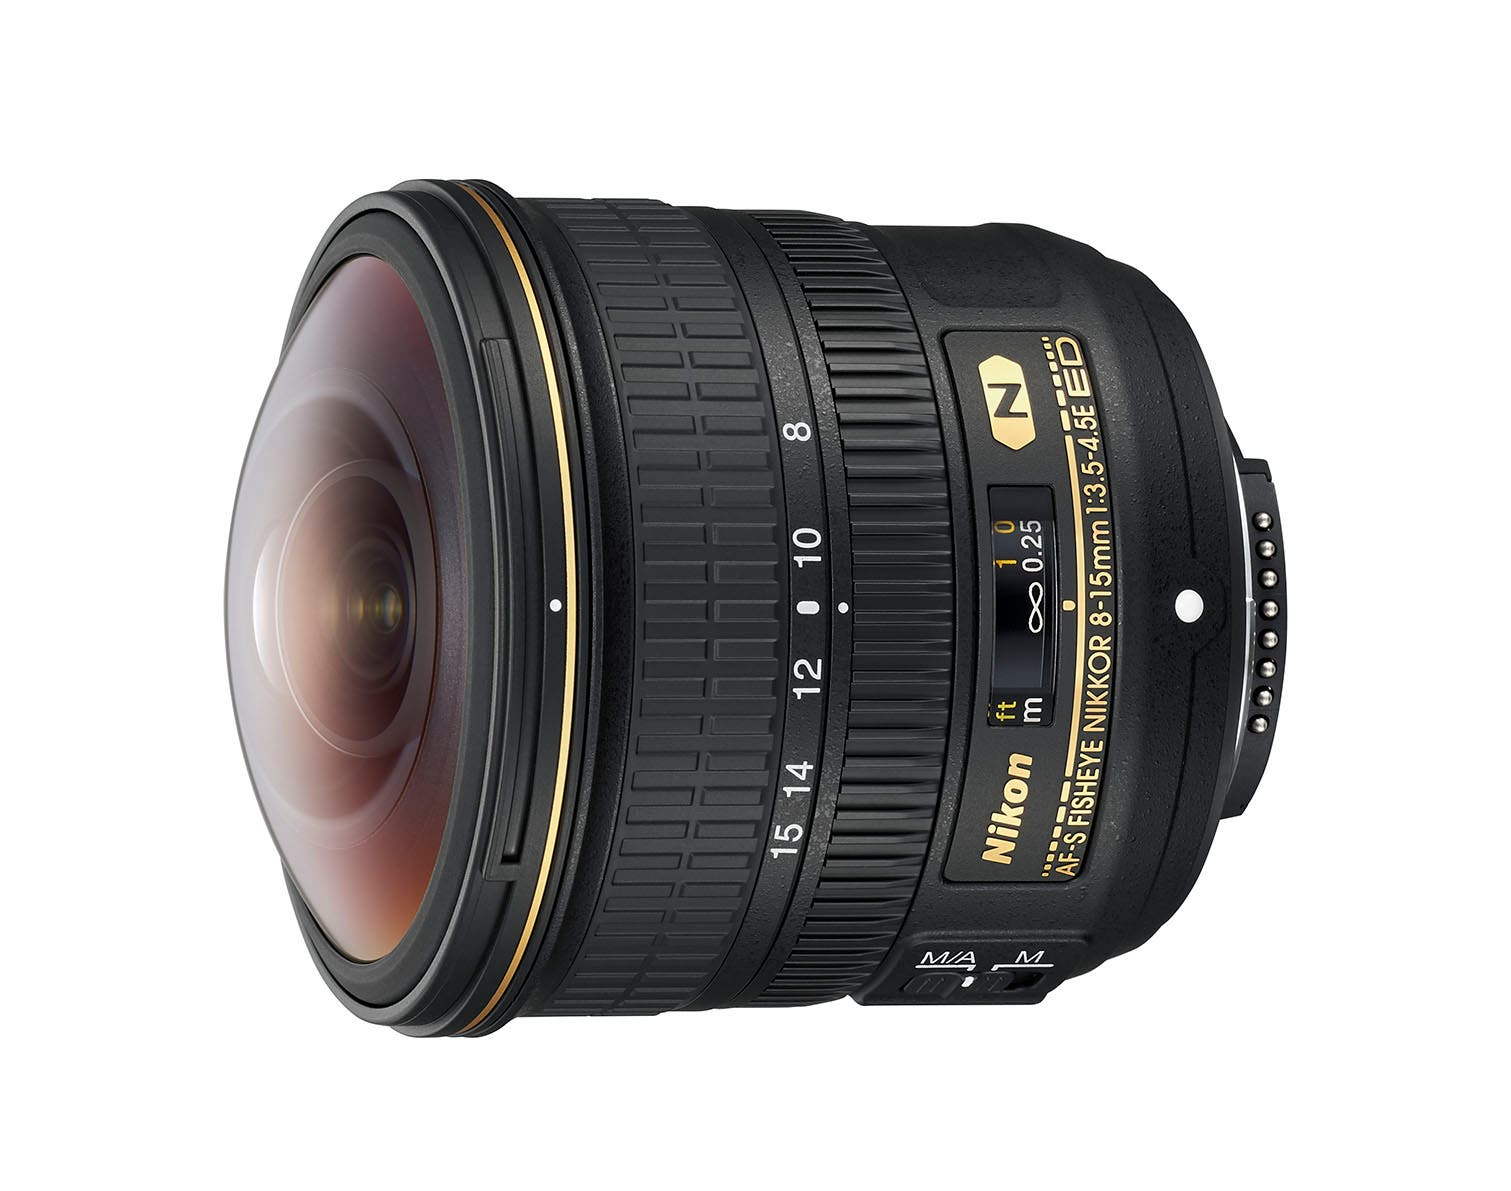 The Nikon 28mm F1 4 E May Be Best Walkabout Lens For Nikon